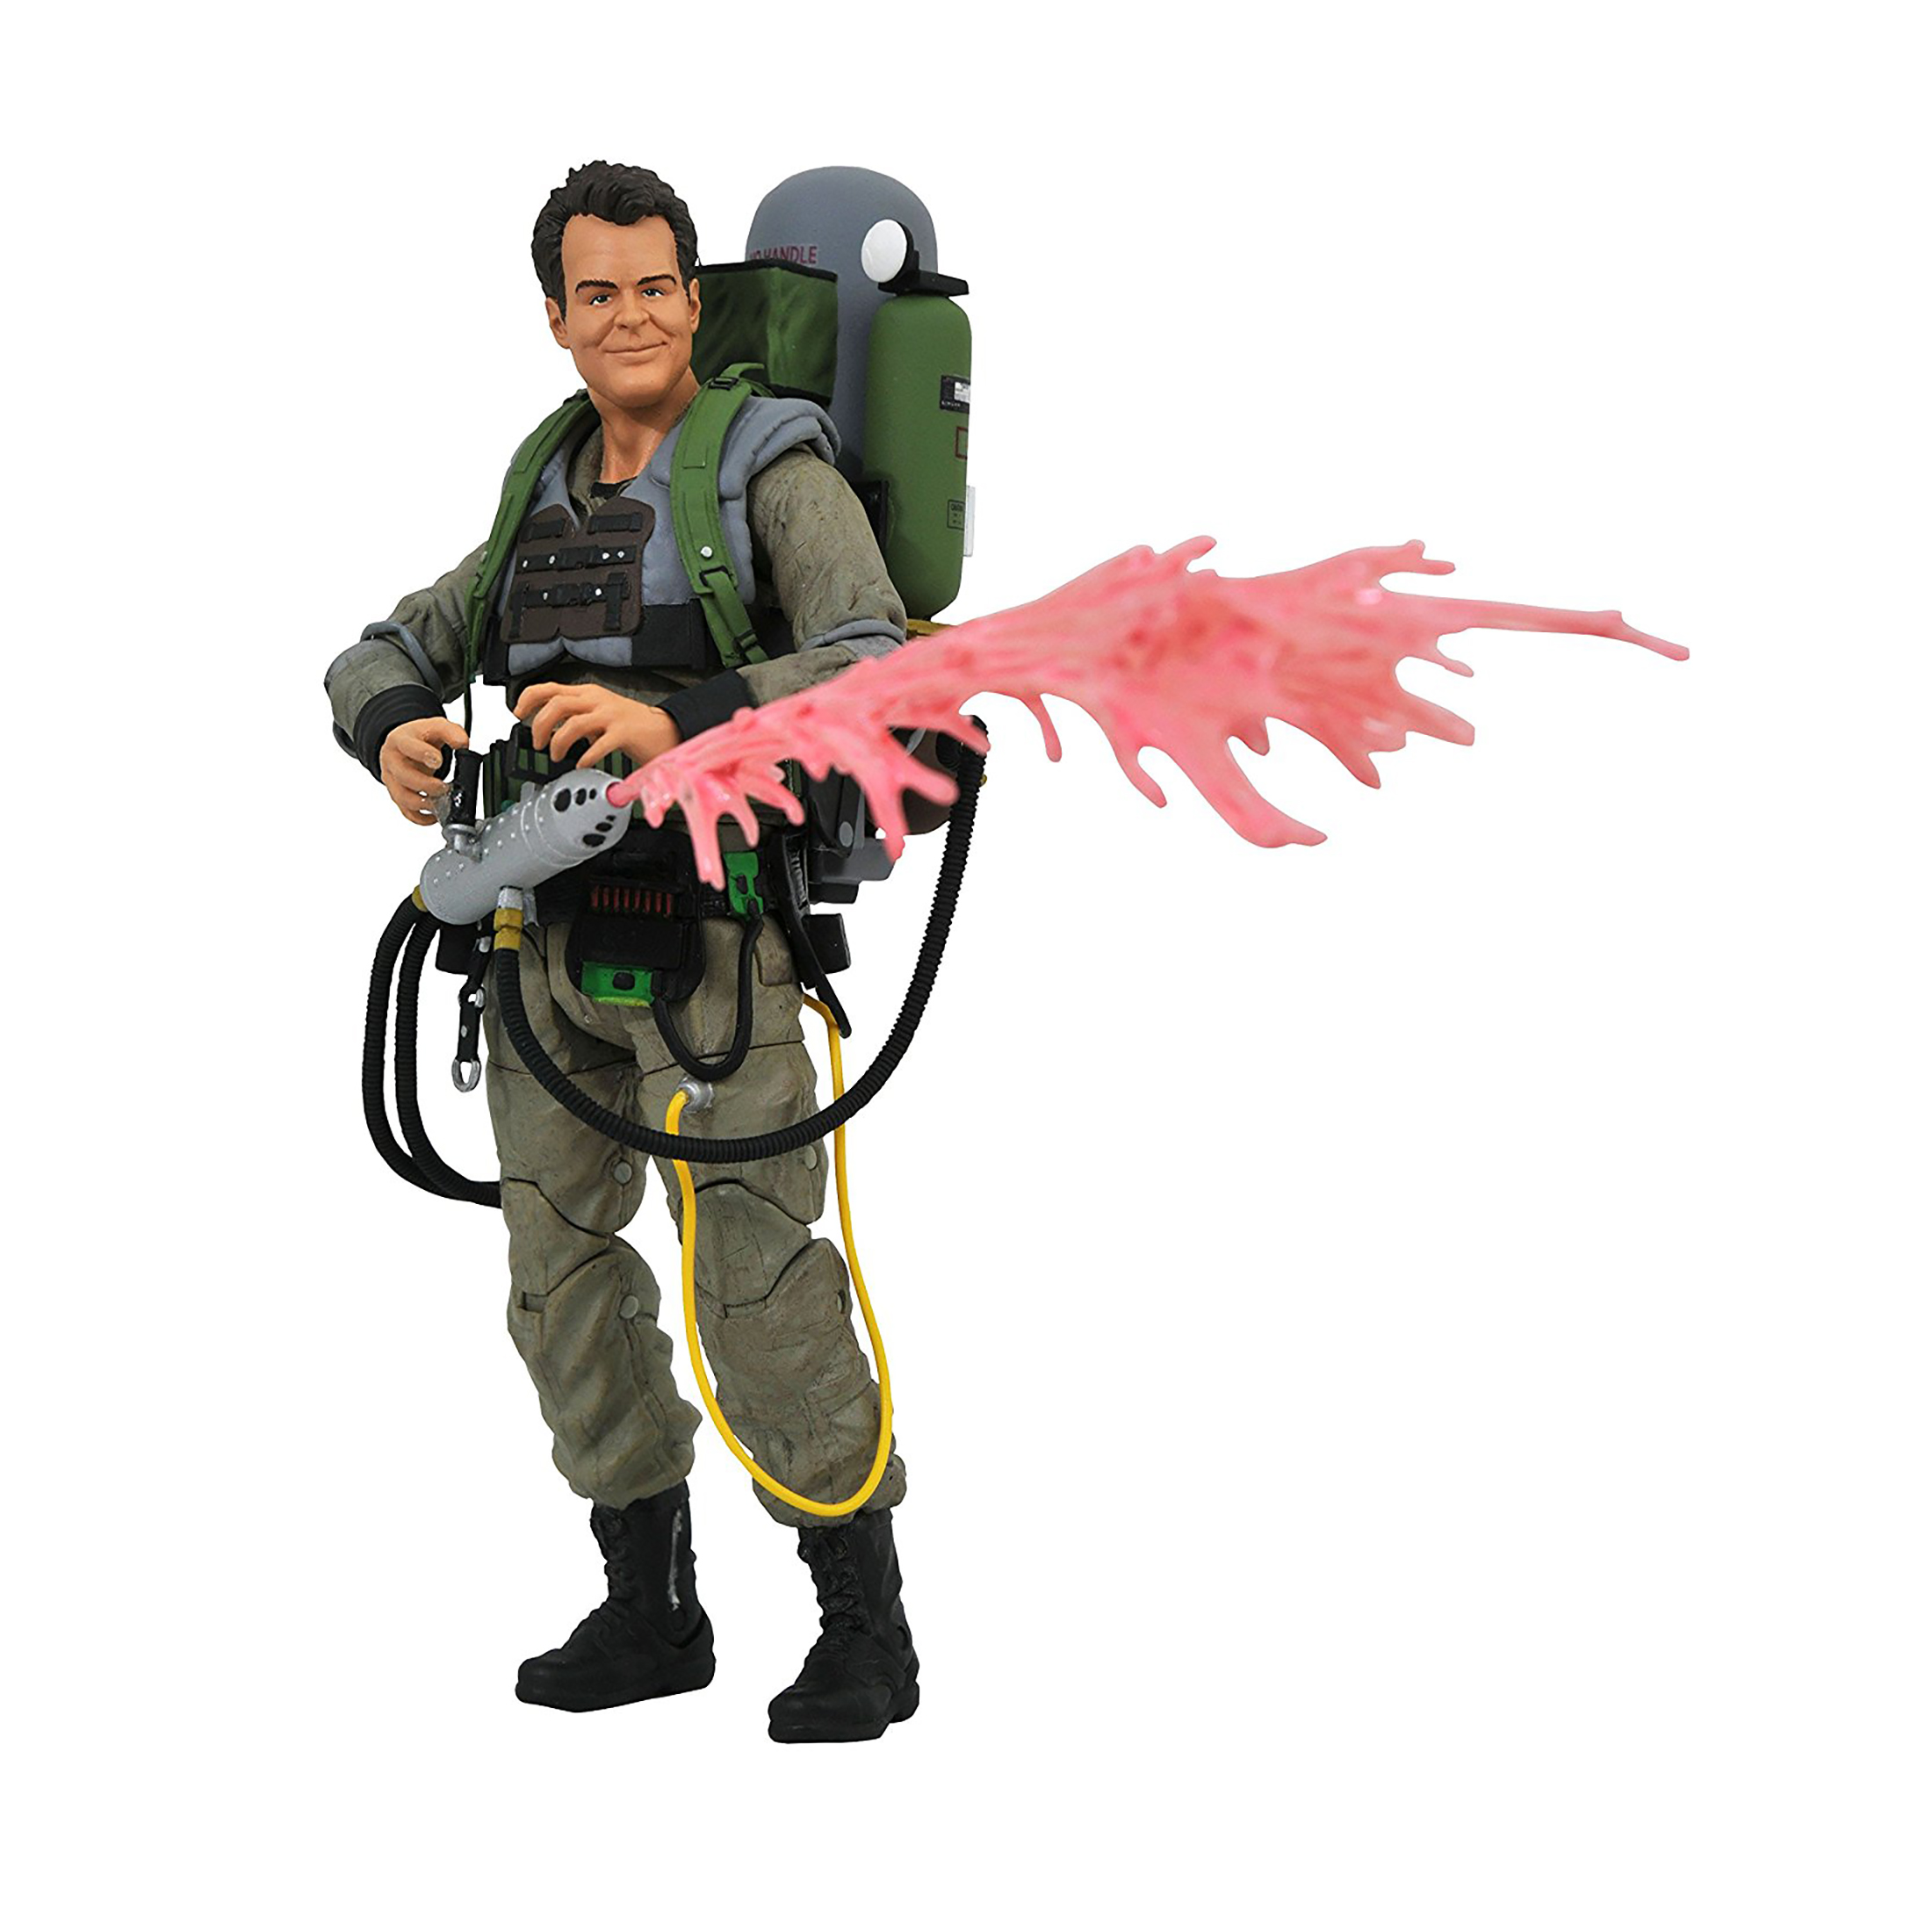 Ghostbusters 2 Select Series 8 Winston Zeddemore Action Figure